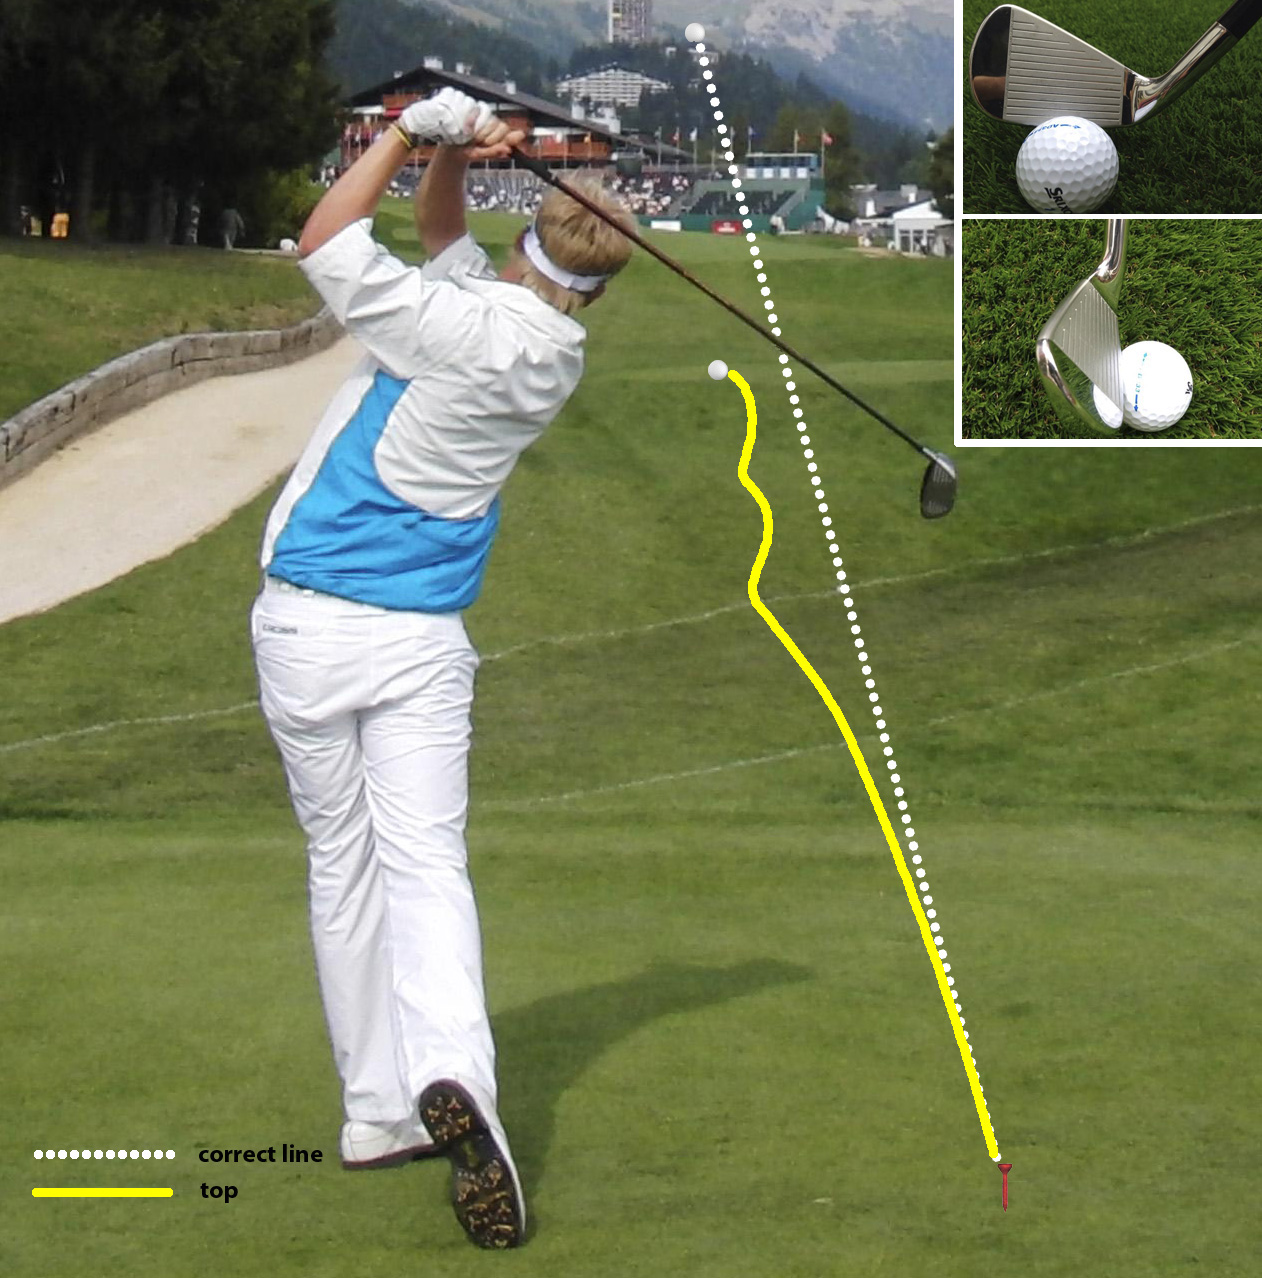 how to turn properly in golf swing